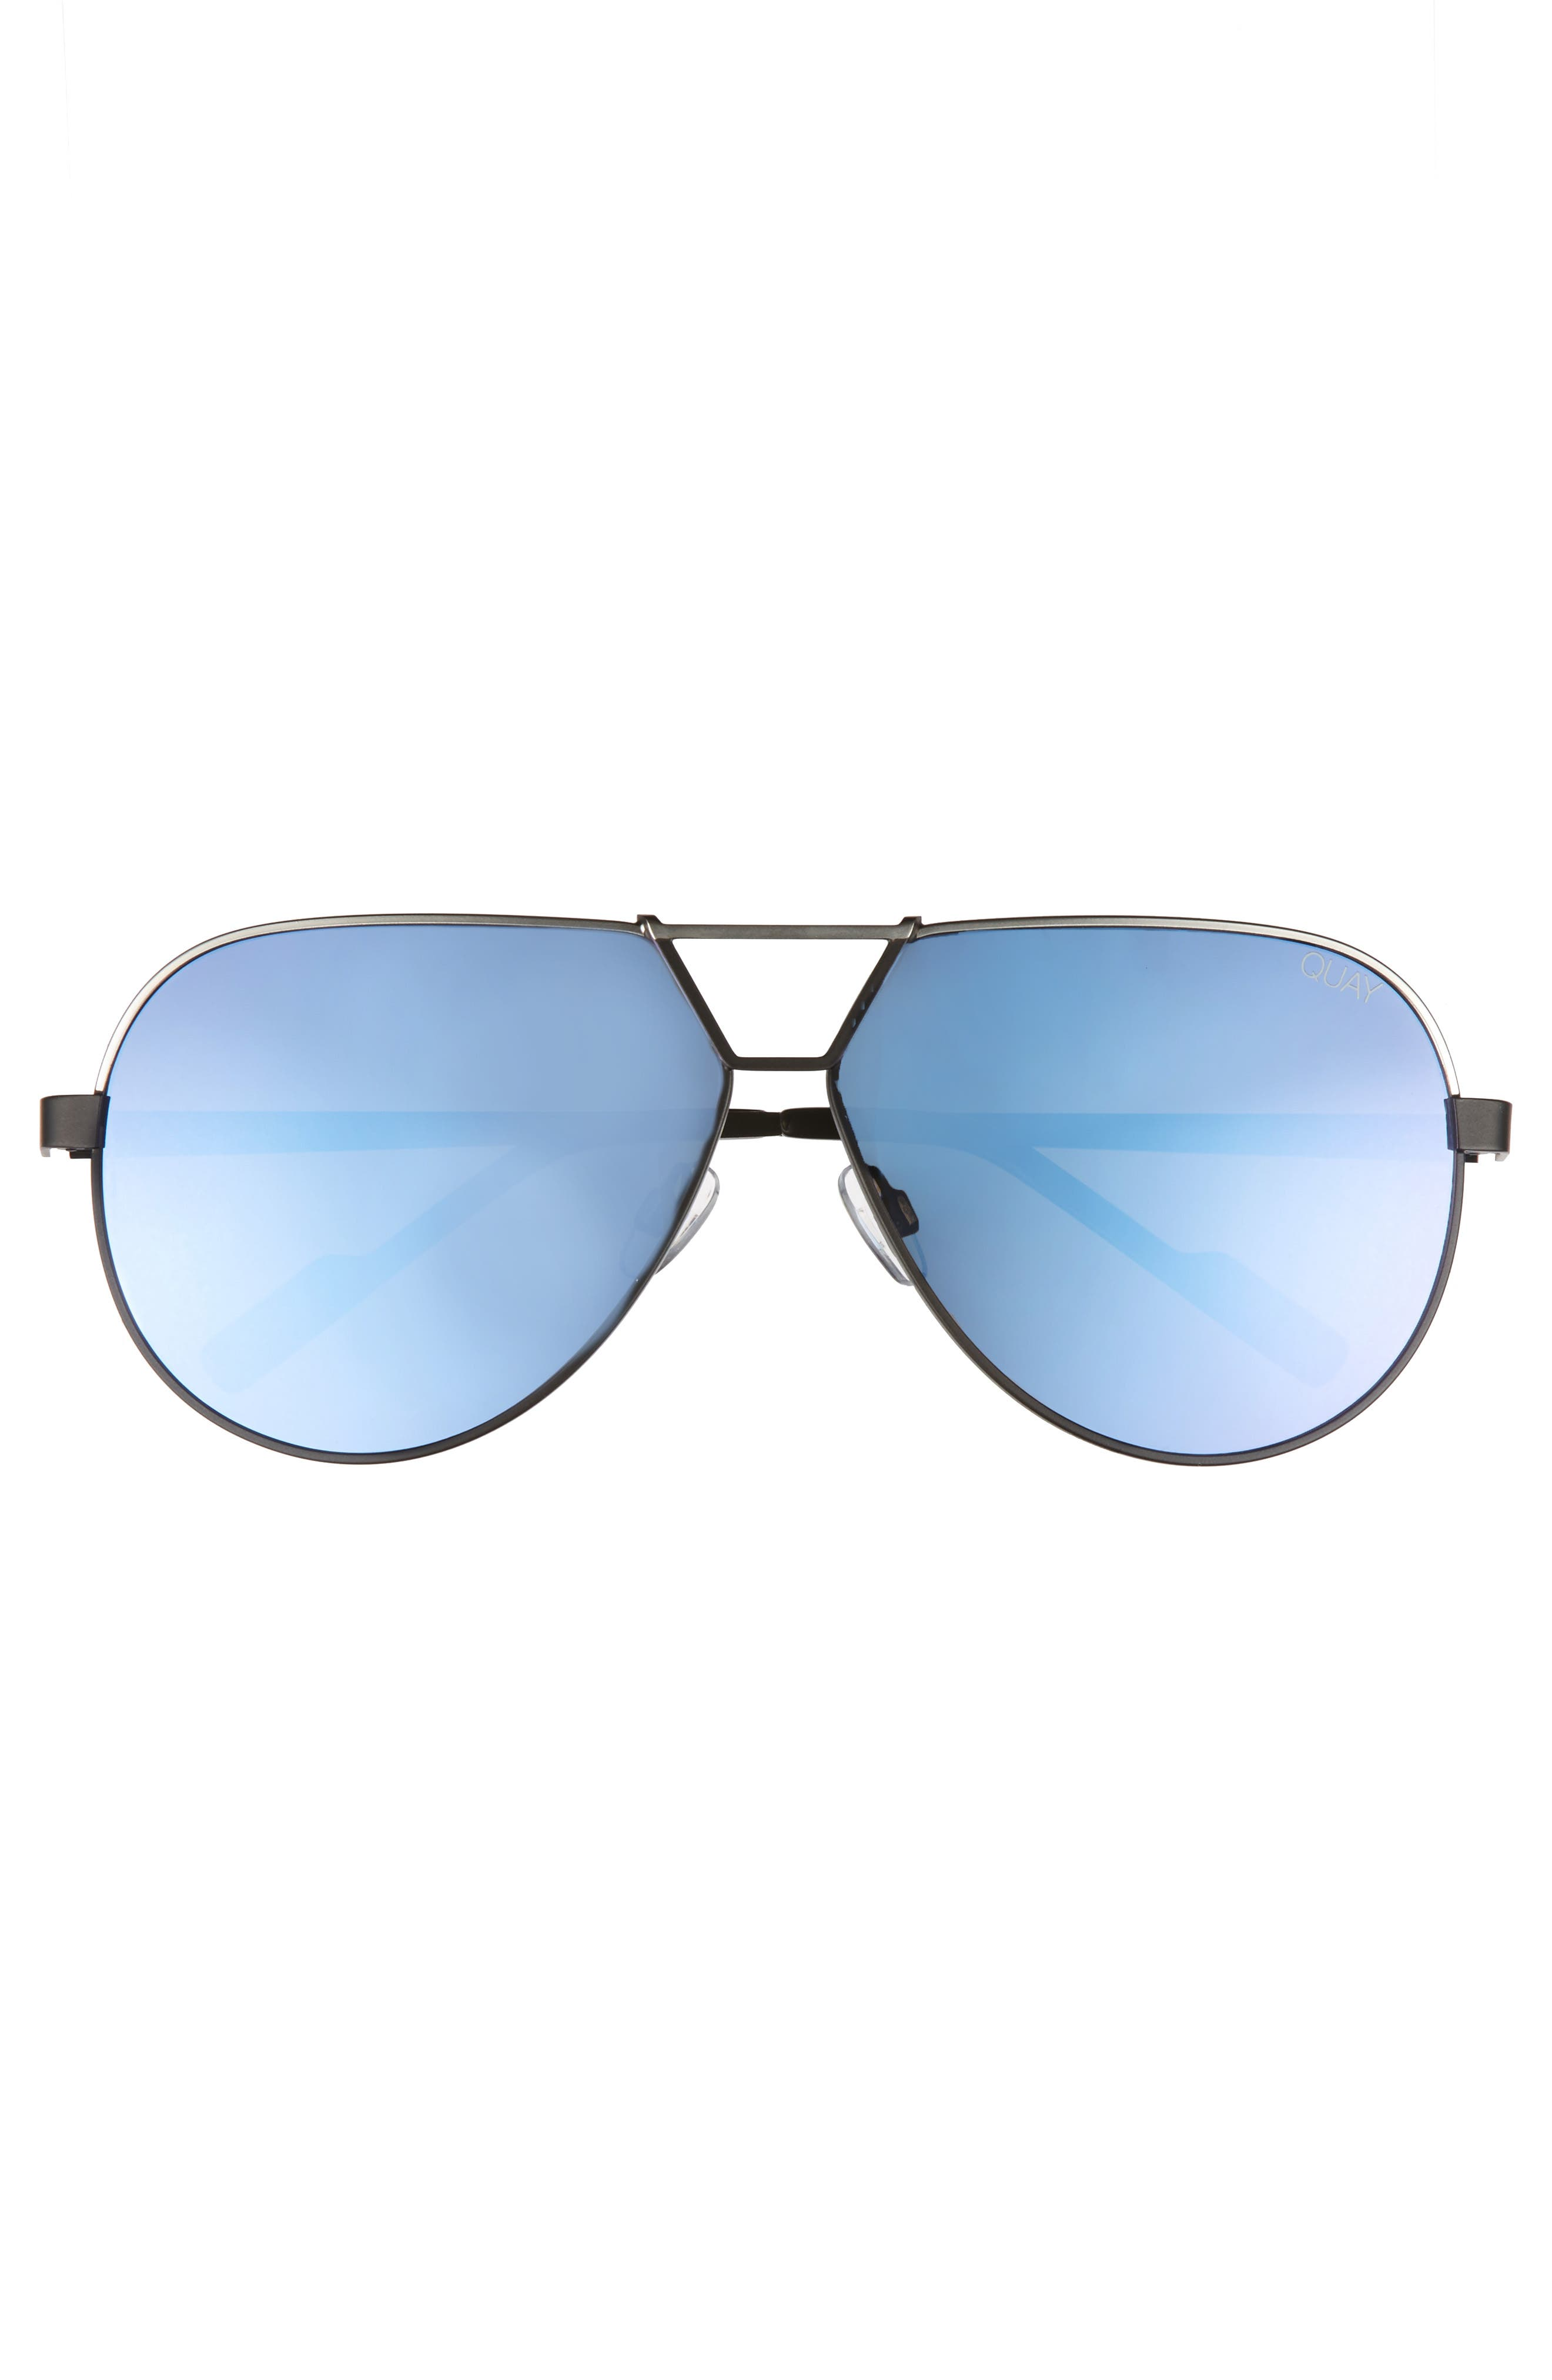 Supernova 63mm Aviator Sunglasses,                             Alternate thumbnail 3, color,                             001